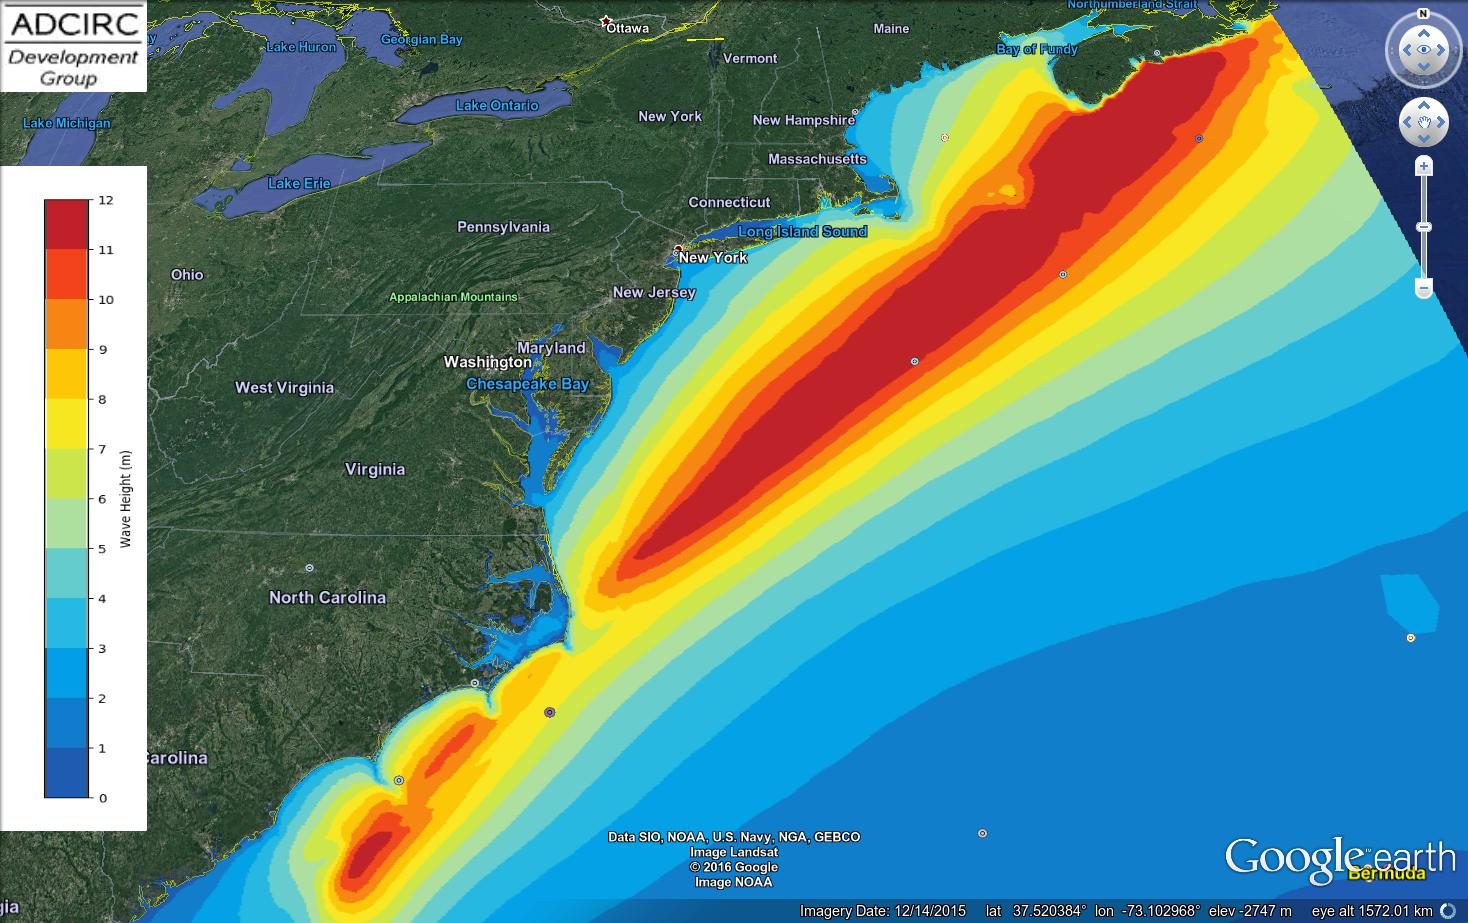 Example 3a: Maximum significant wave heights (m) during Hurricane Arthur (2014) advisory 12, as visualized in Google Earth.